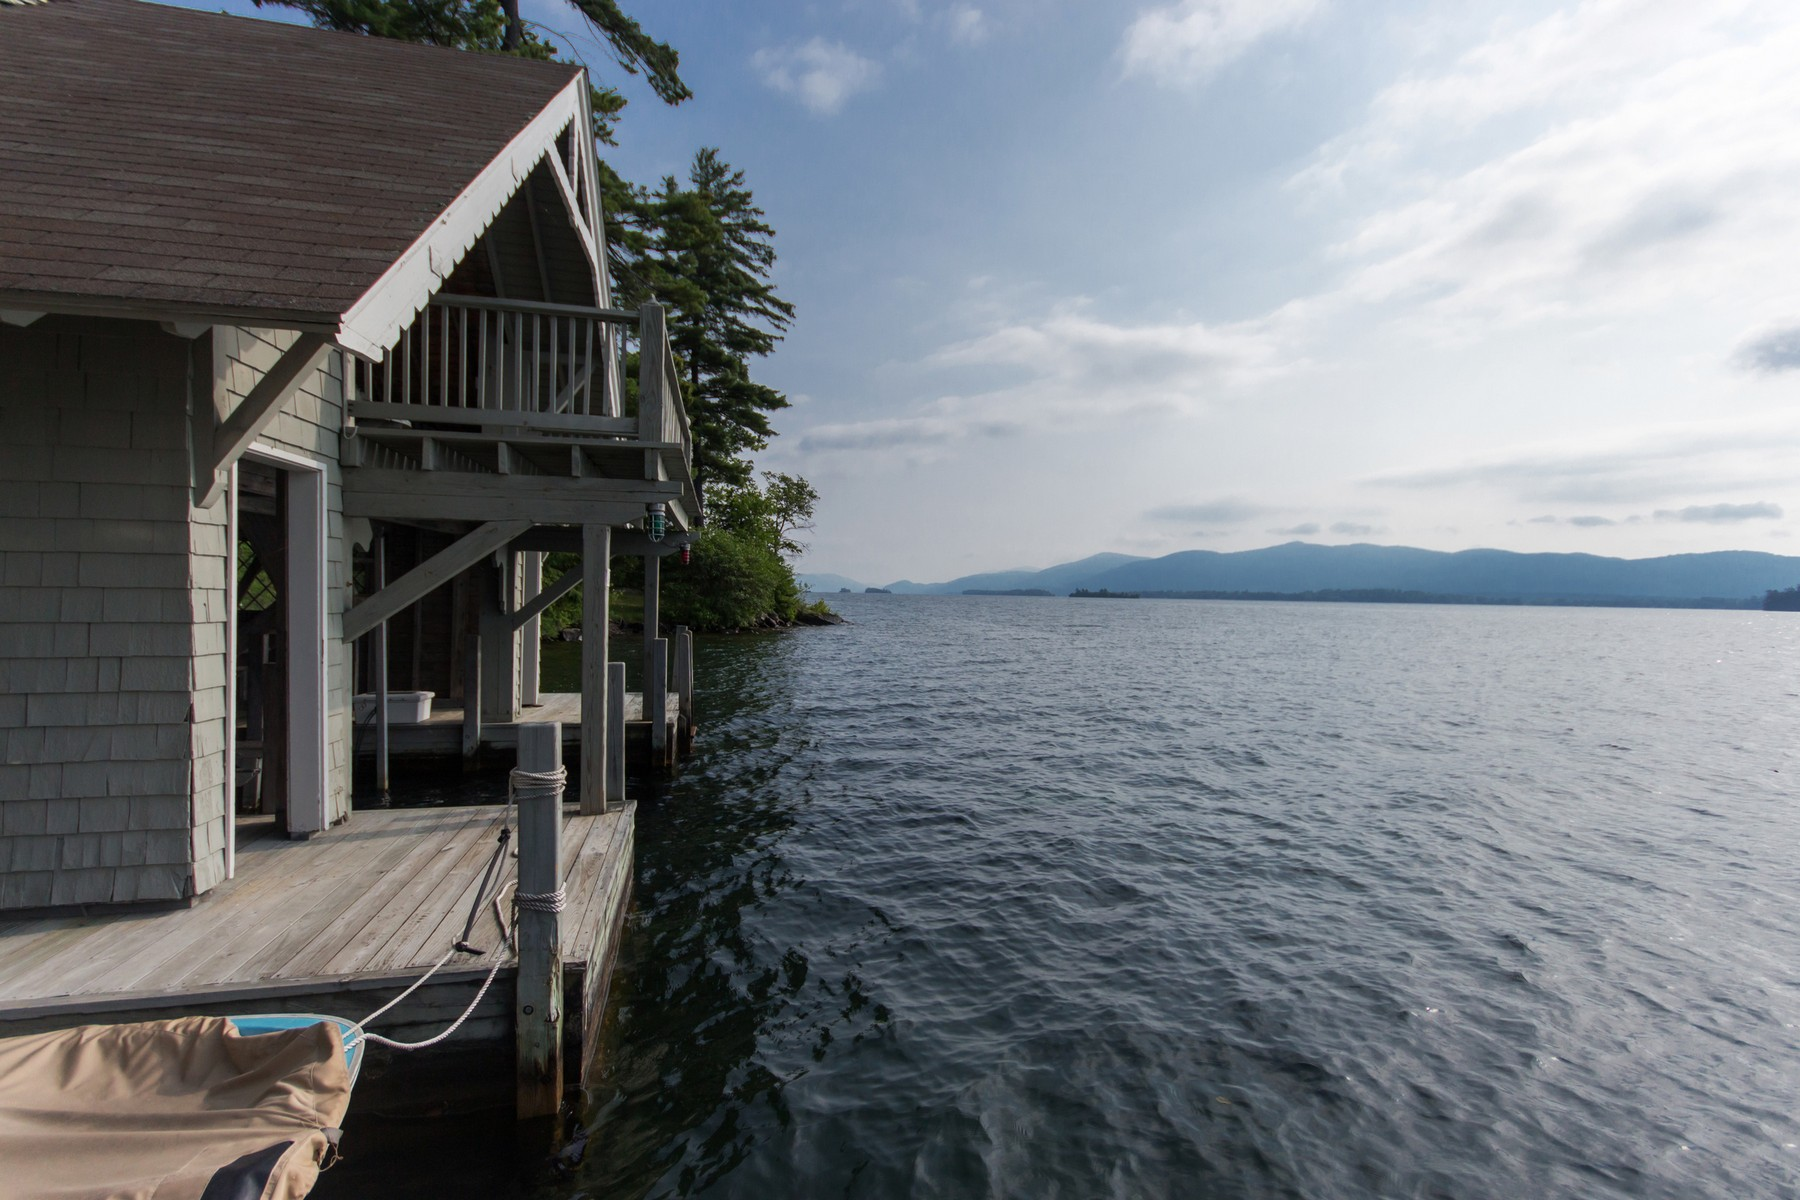 Additional photo for property listing at Lake George Waterfront Rental 30  Ahnohwarah Rd. 乔治湖, 纽约州 12845 美国